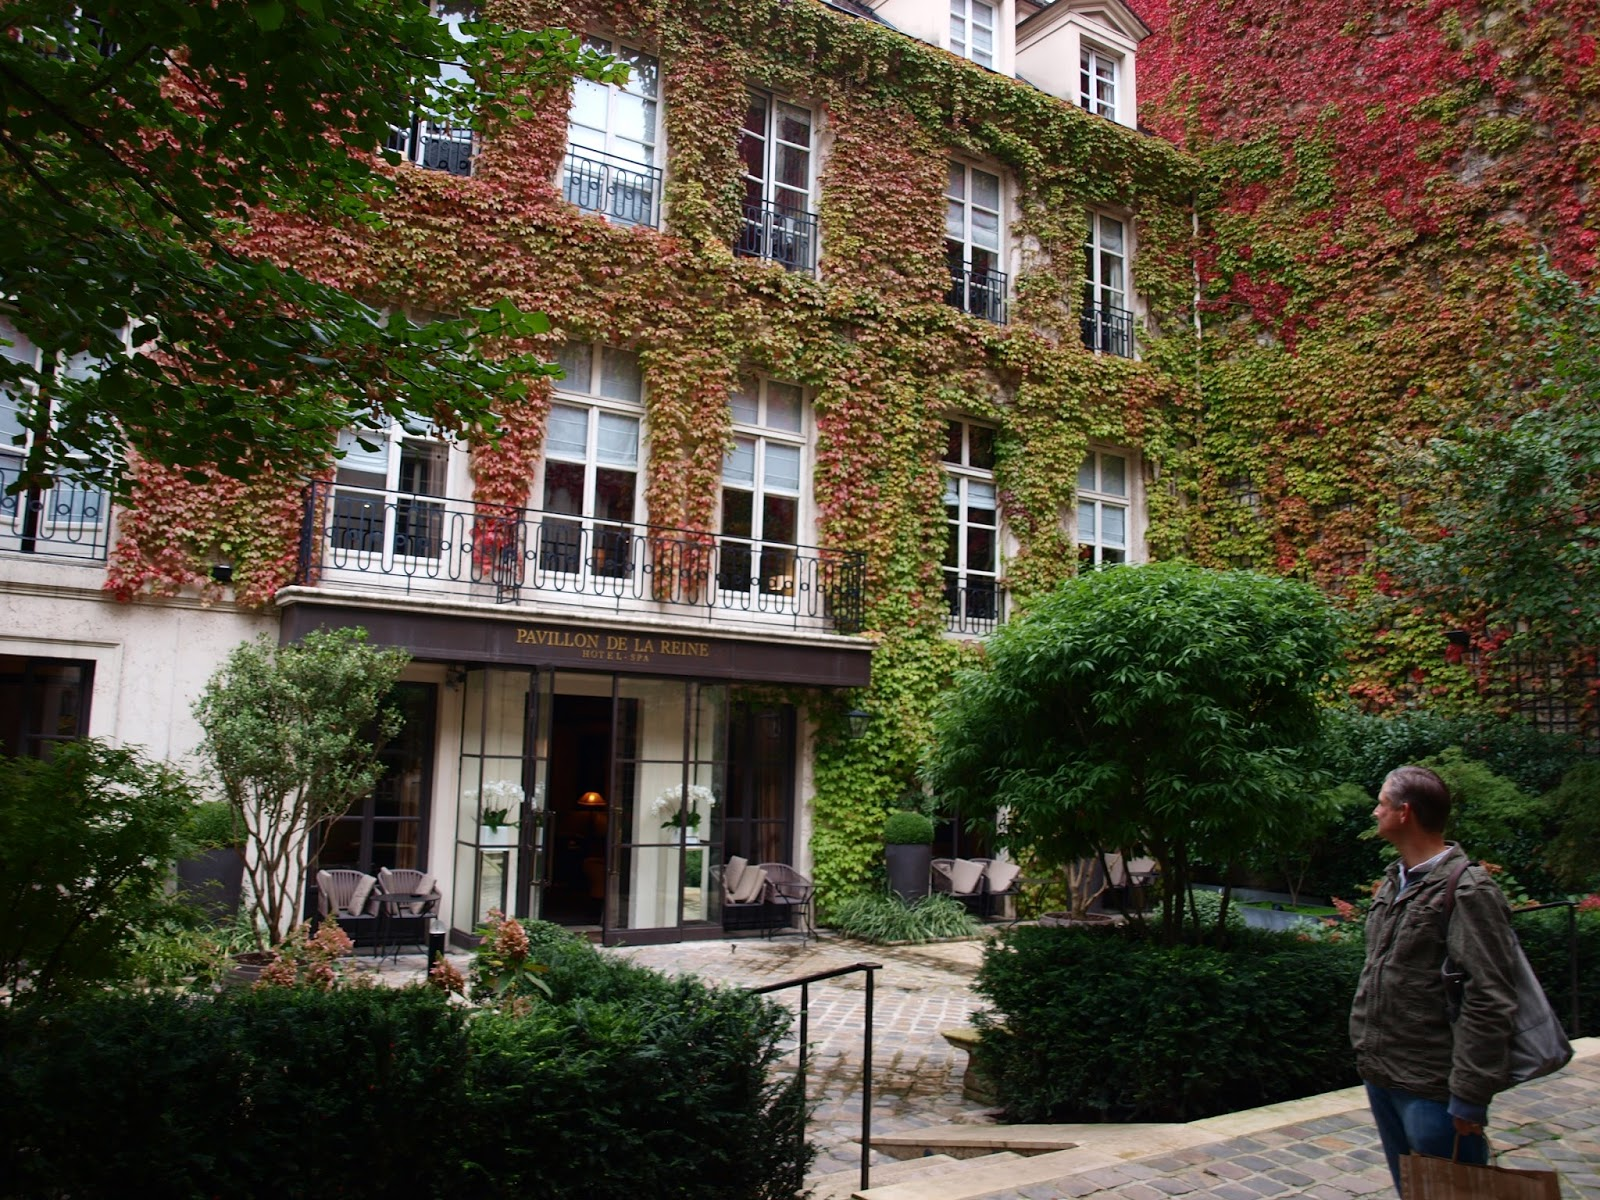 Vine covered Paris hotel in fall - by Hello Lovely Studio